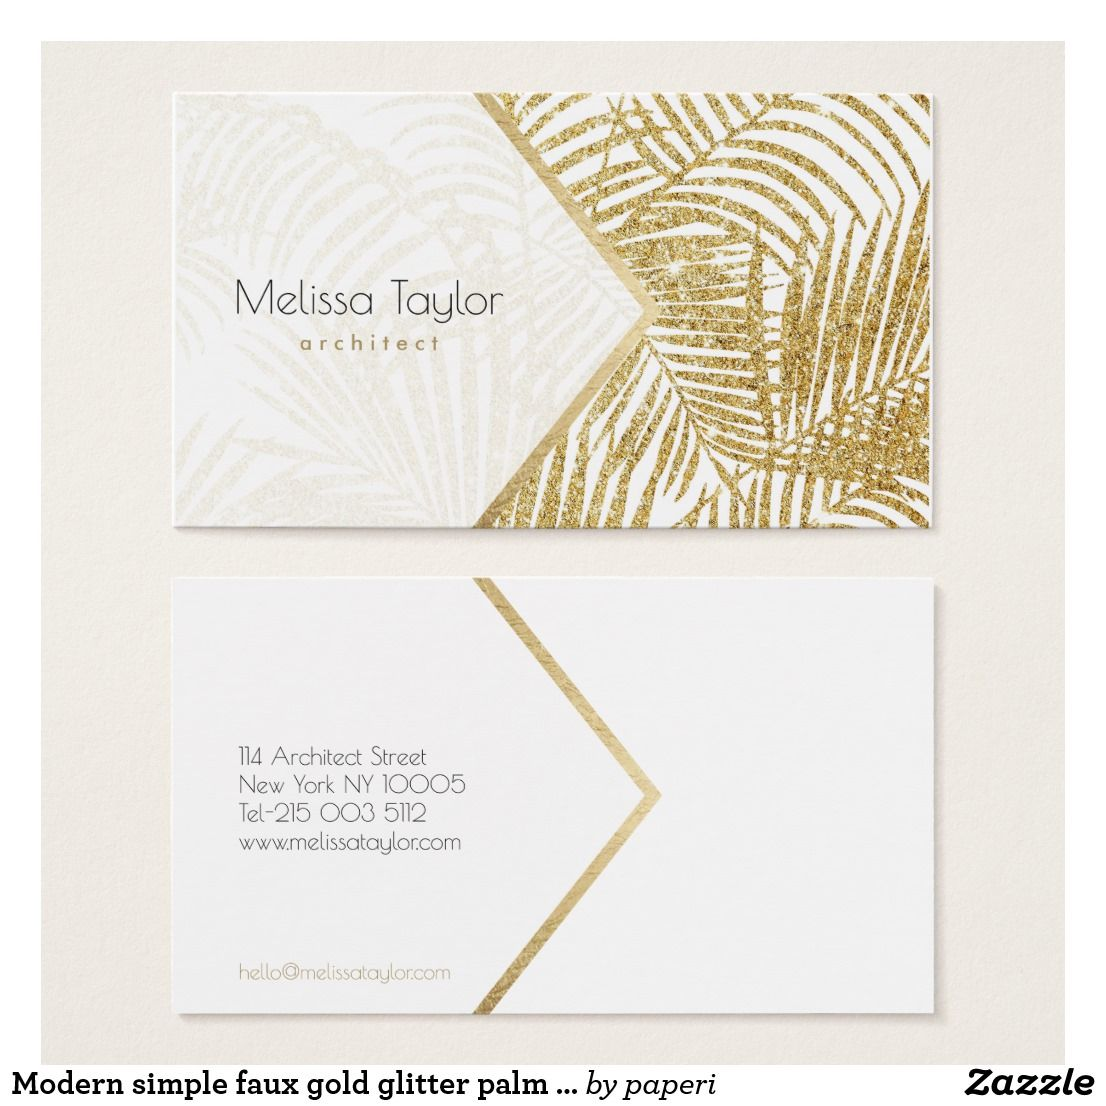 Modern Simple Faux Gold Glitter Palm Architect Business Card